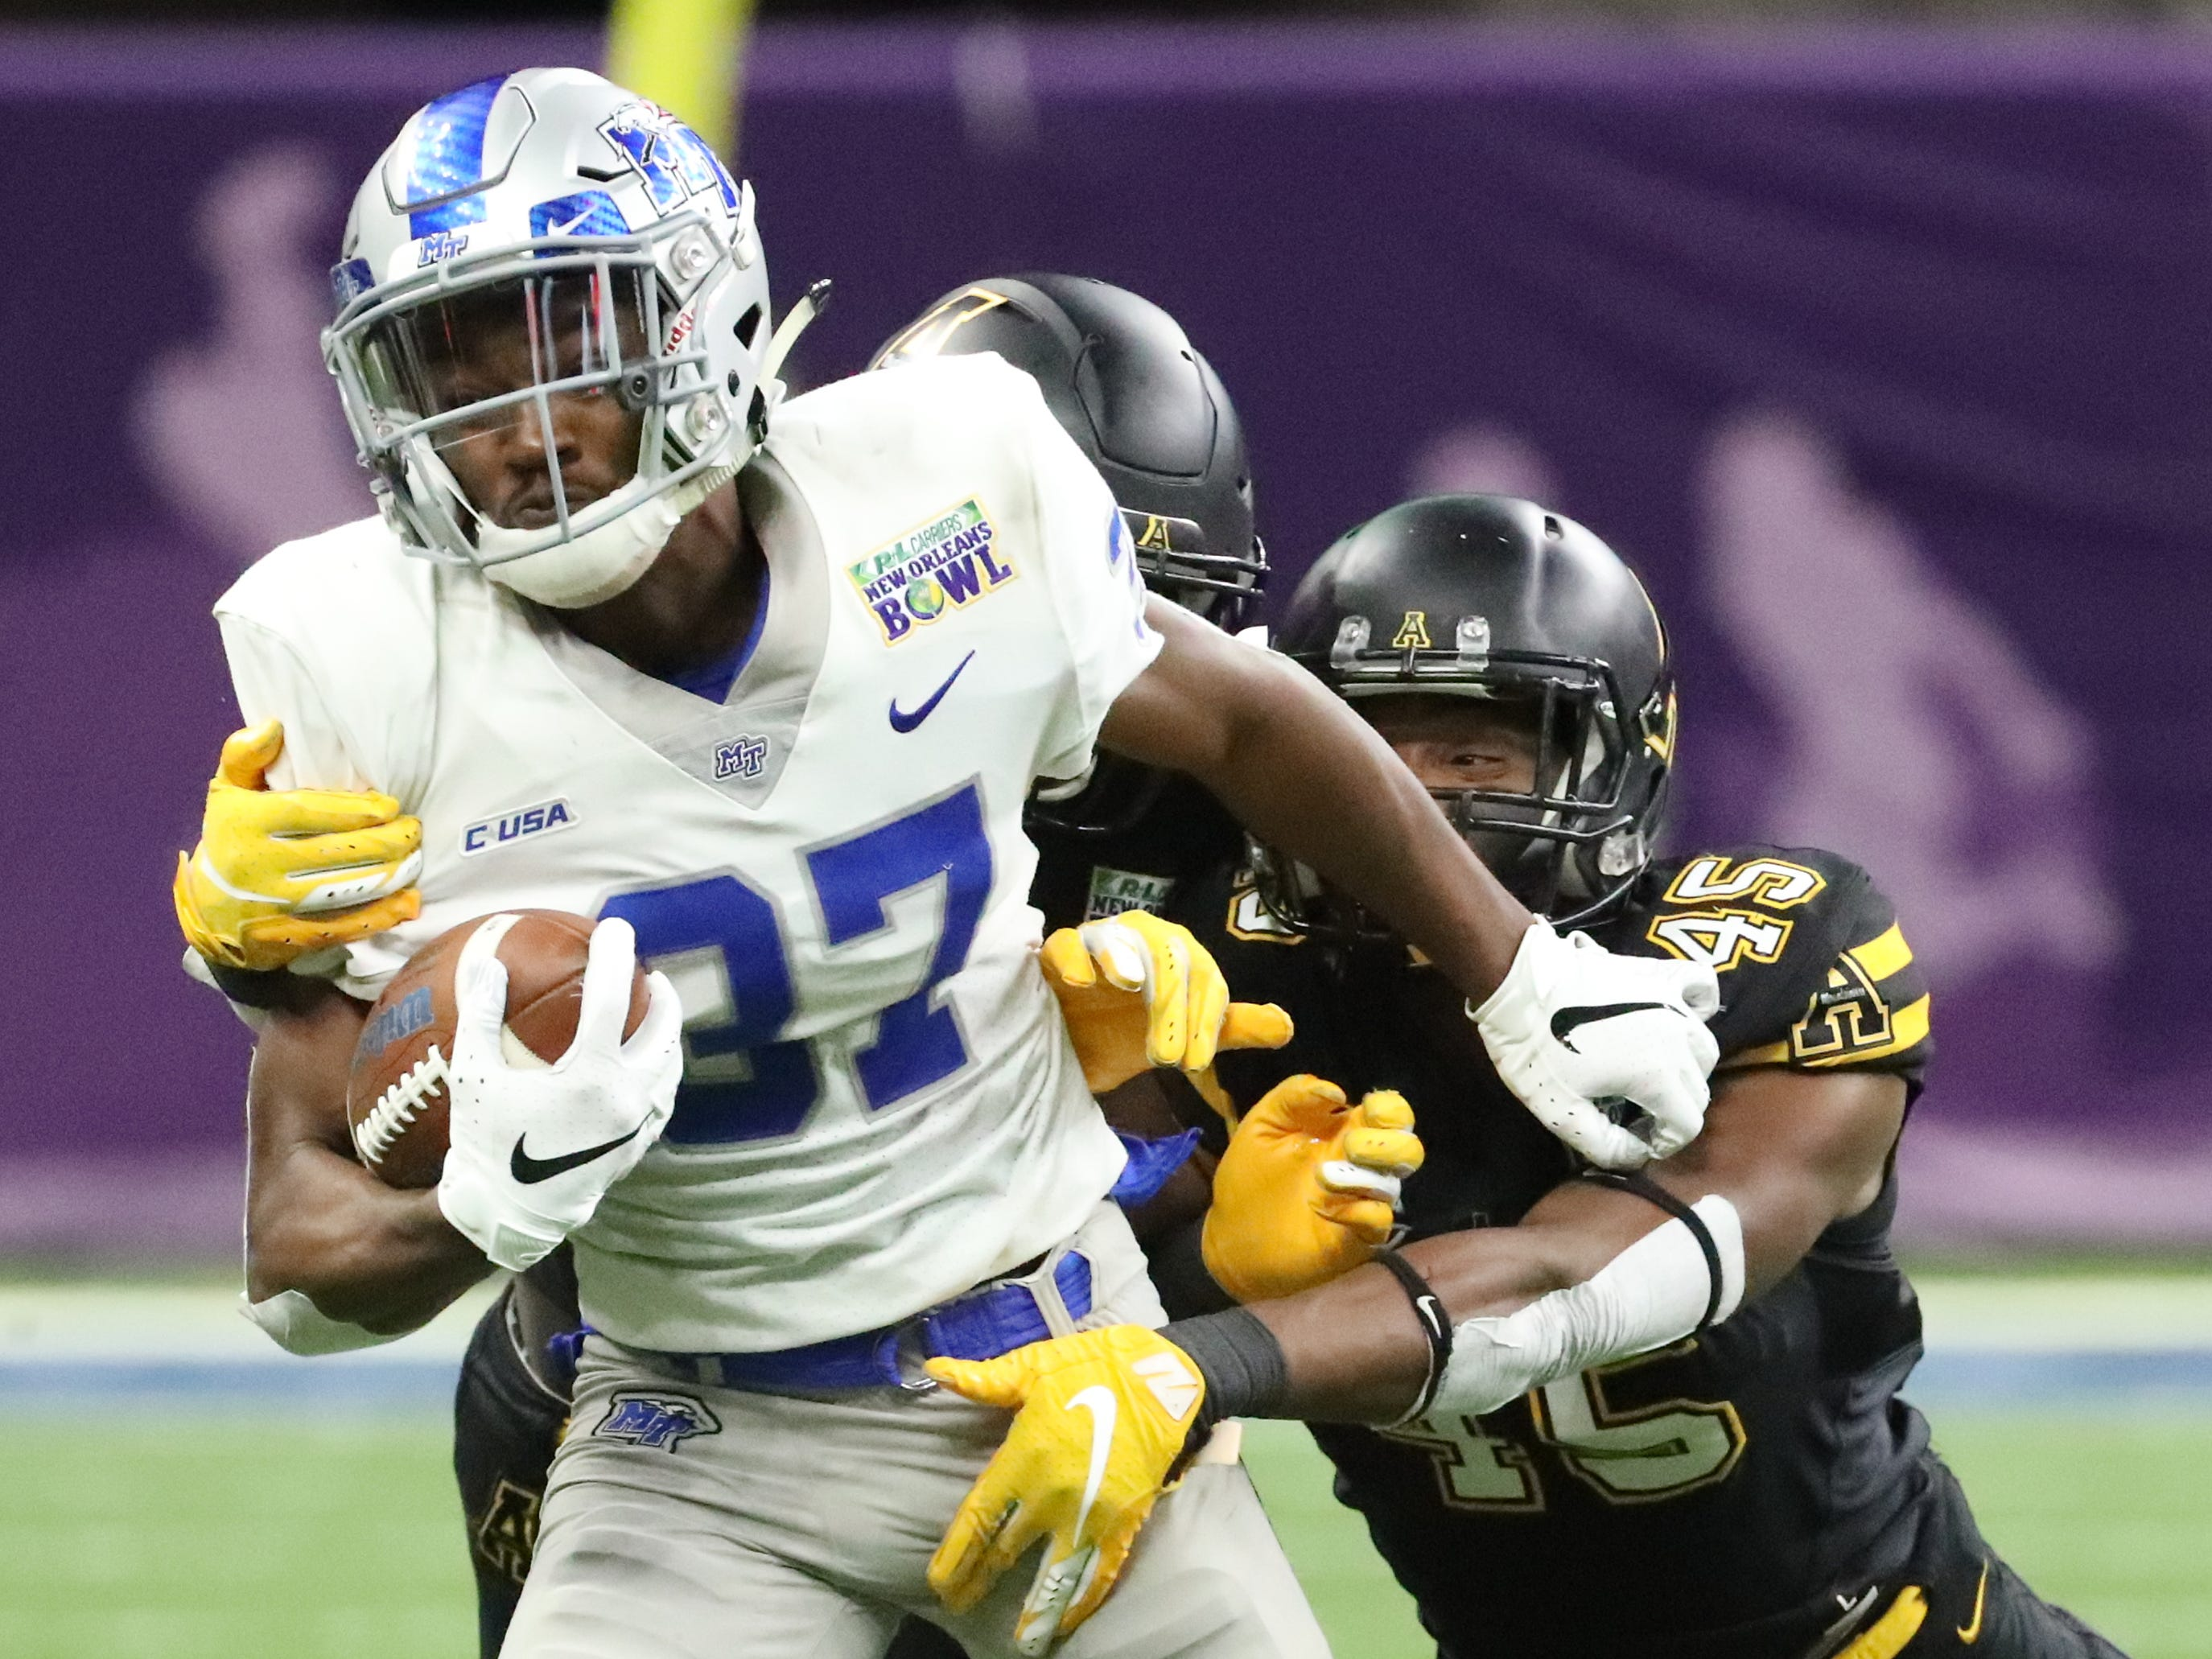 Middle Tennessee Blue Raiders safety Kendricks Gladney (38) runs the ball as Appalachian State Mountaineers linebacker Trey Cobb (45) moves in for a tackle on Saturday, Dec. 15, 2018, during the New Orleans Bowl.